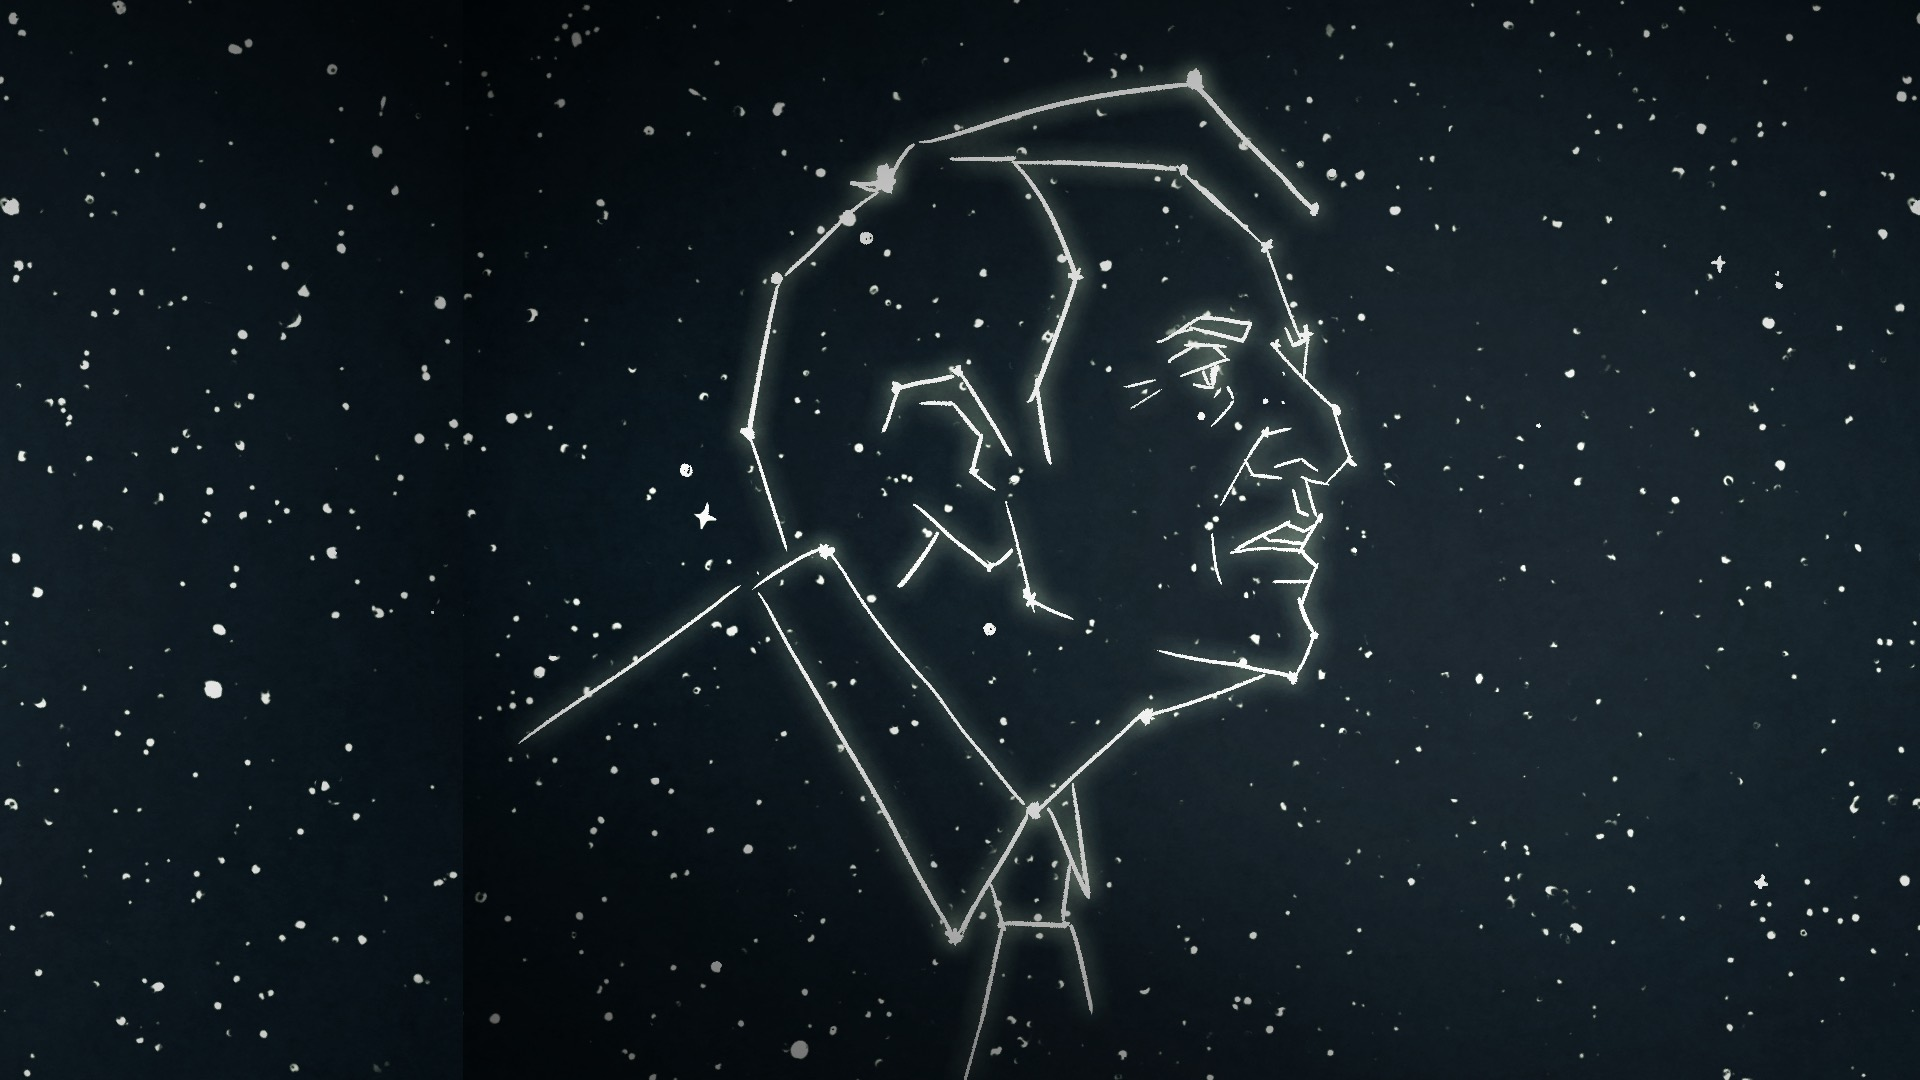 Mean Wallpaper Quotes Carl Sagan On Extraterrestrials Blank On Blank